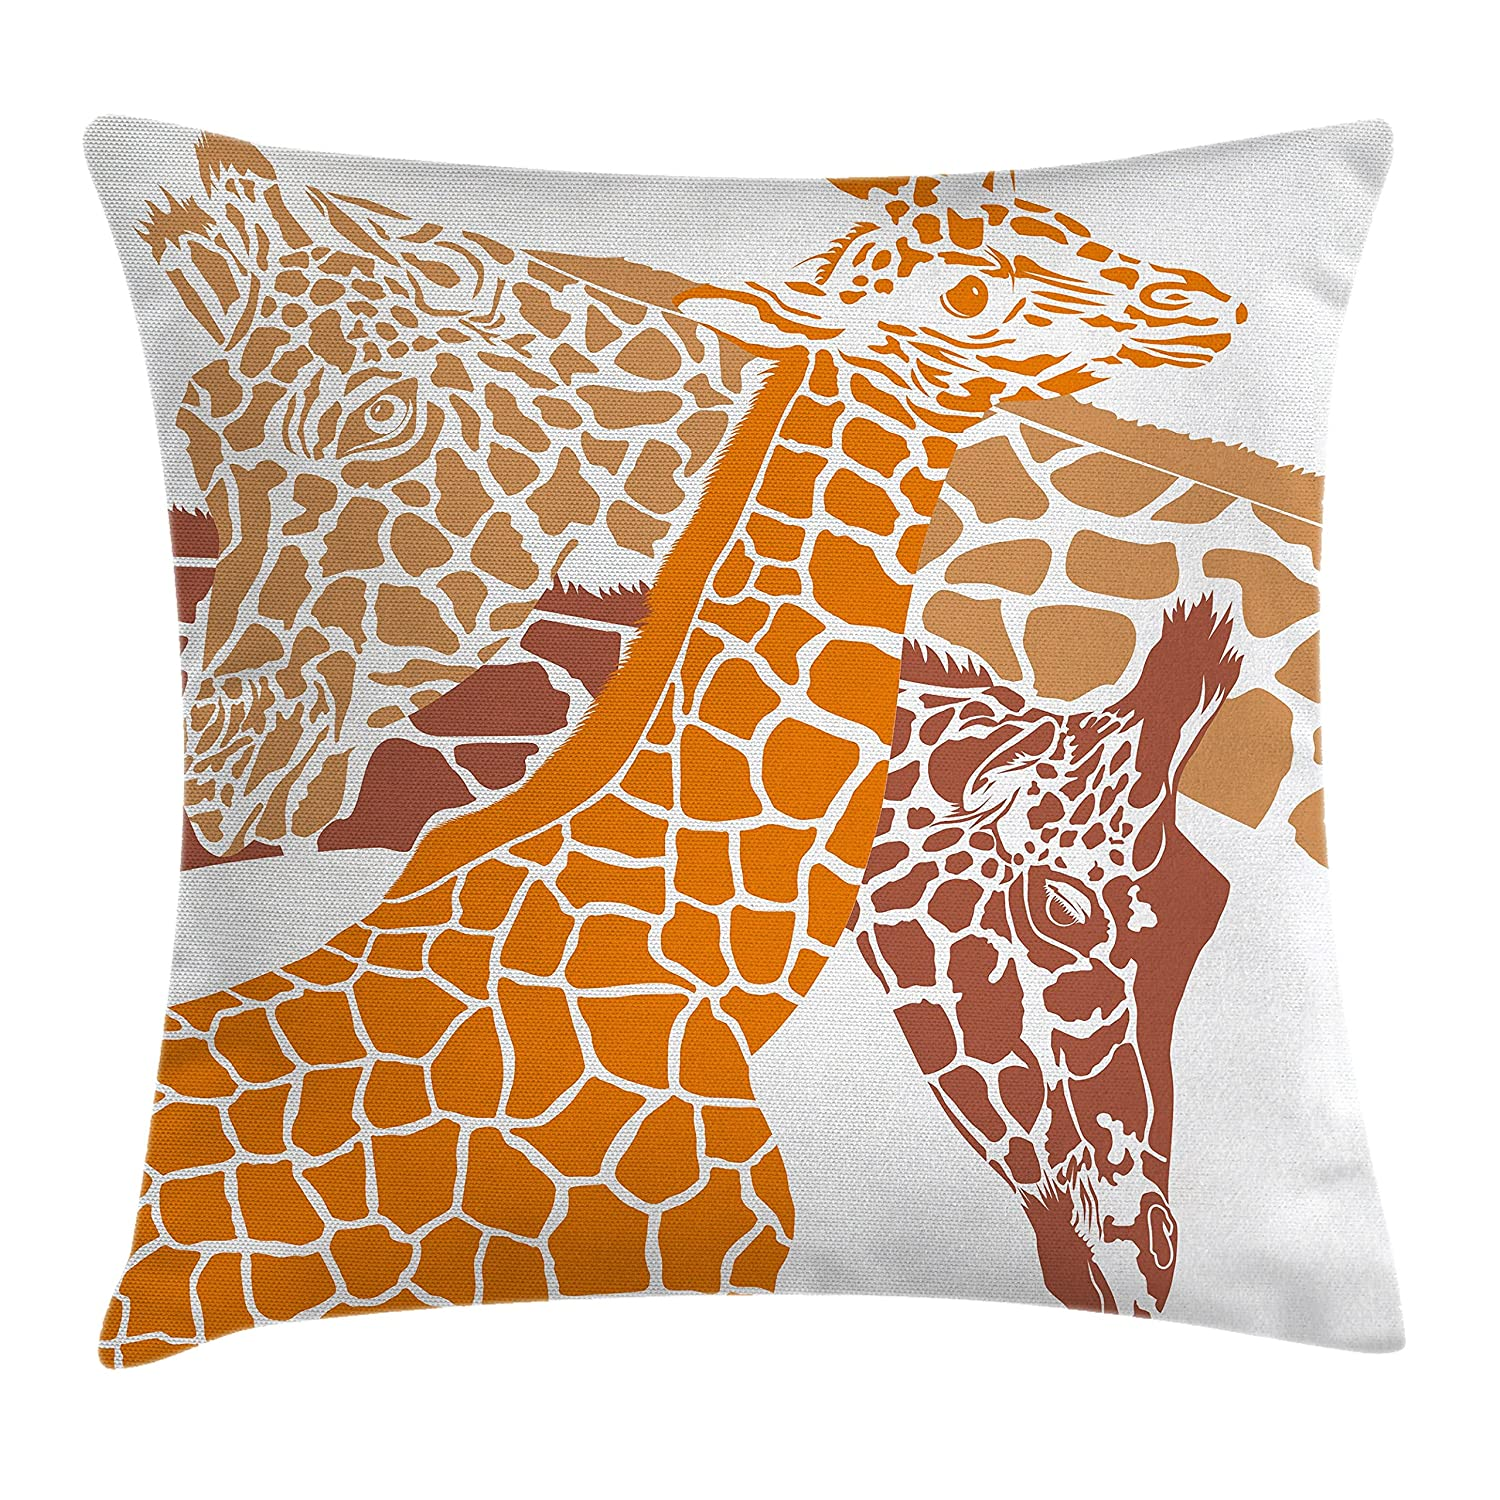 Ambesonne Giraffe Throw Pillow Cushion Cover, Sketch of A Family Safari Wildlife in African Tall Animal Zoo Camouflage